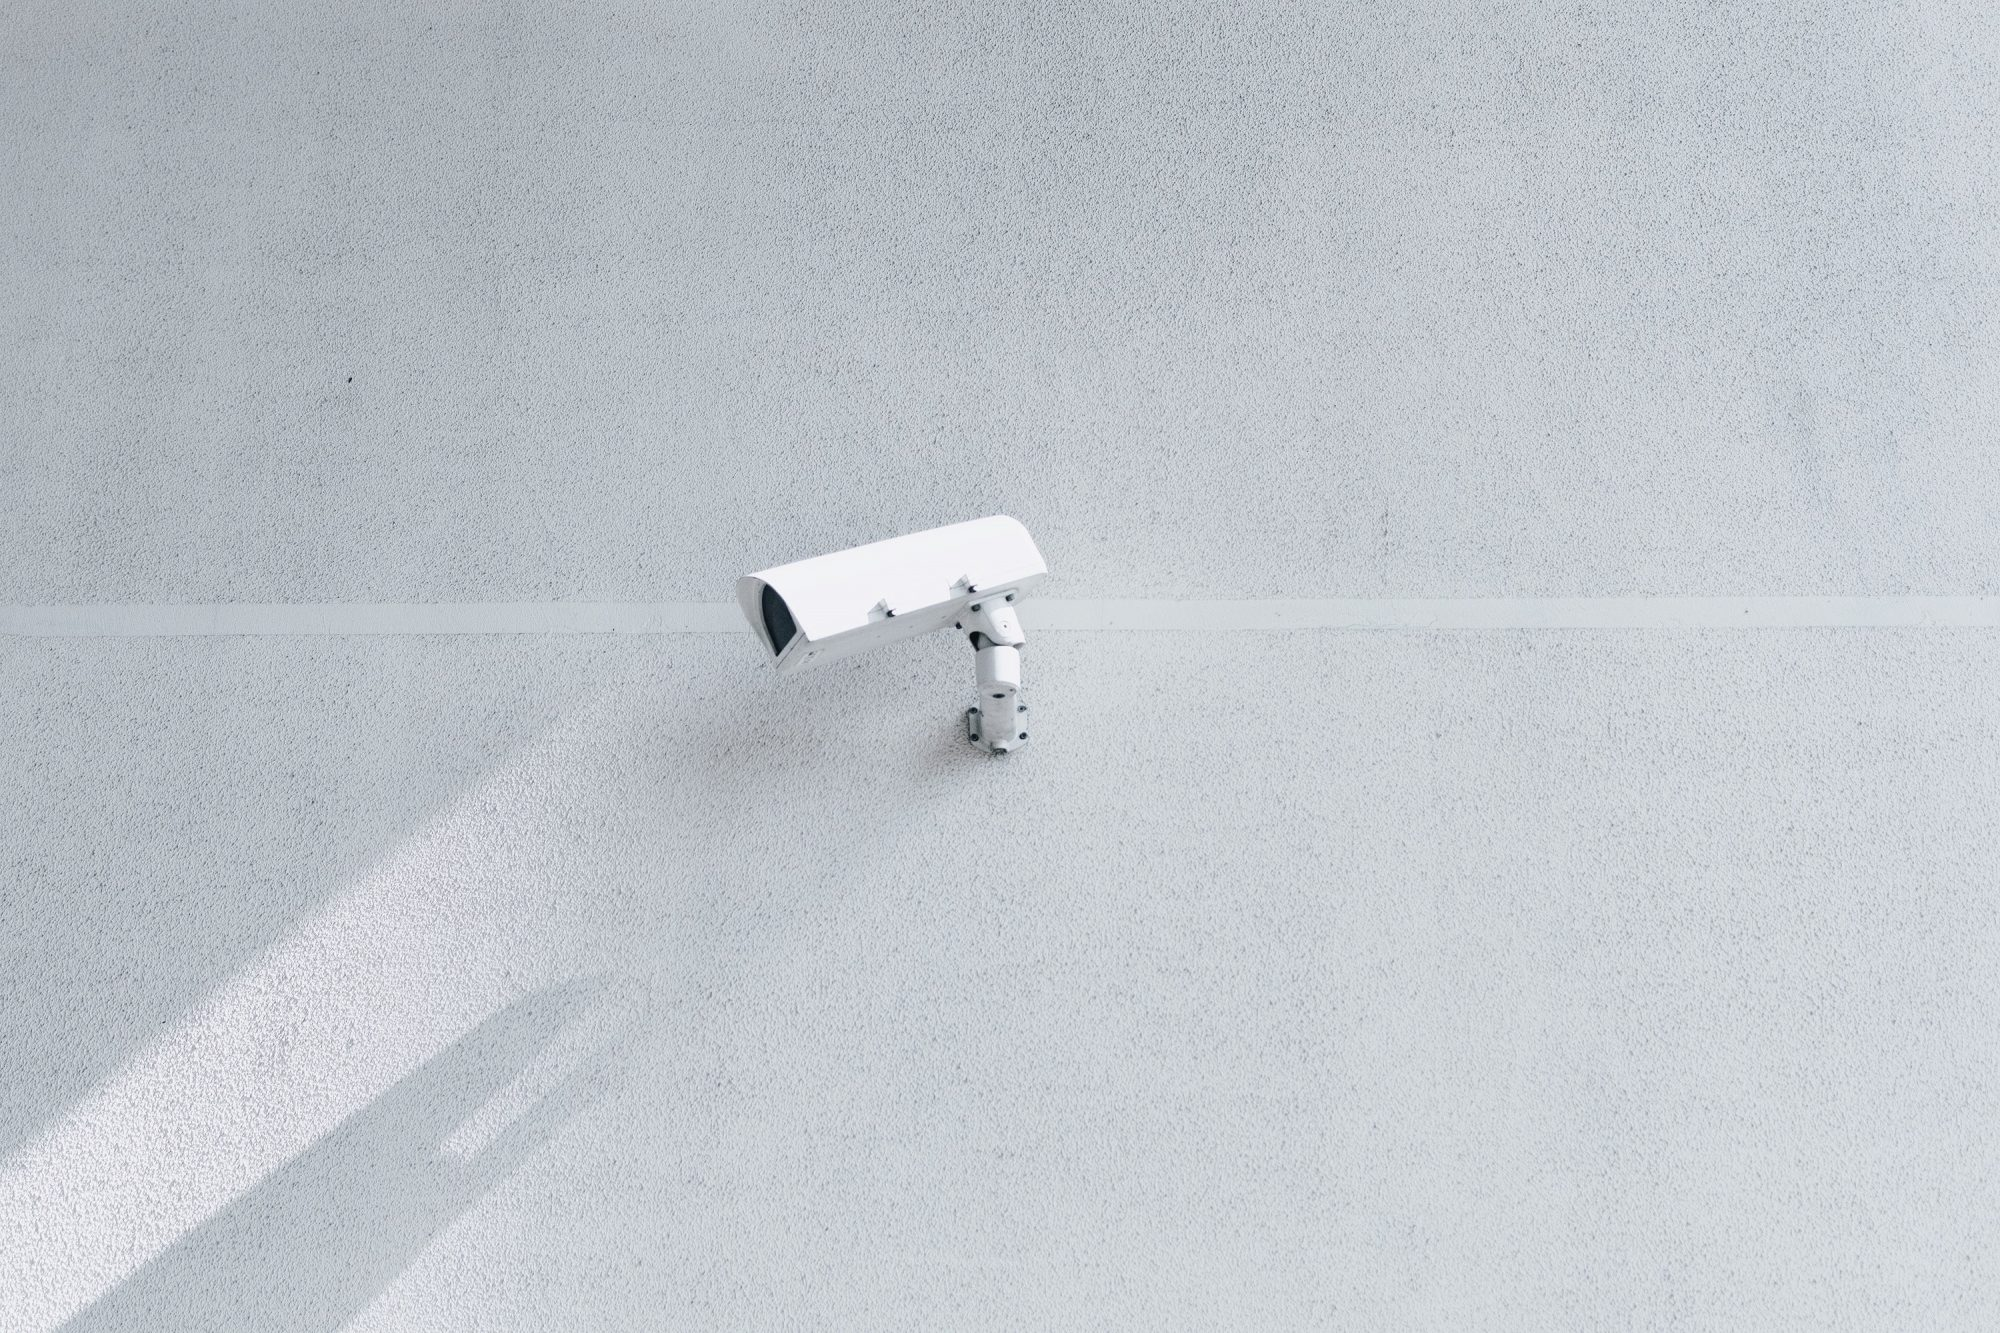 An image of a security camera attached to a blank wall